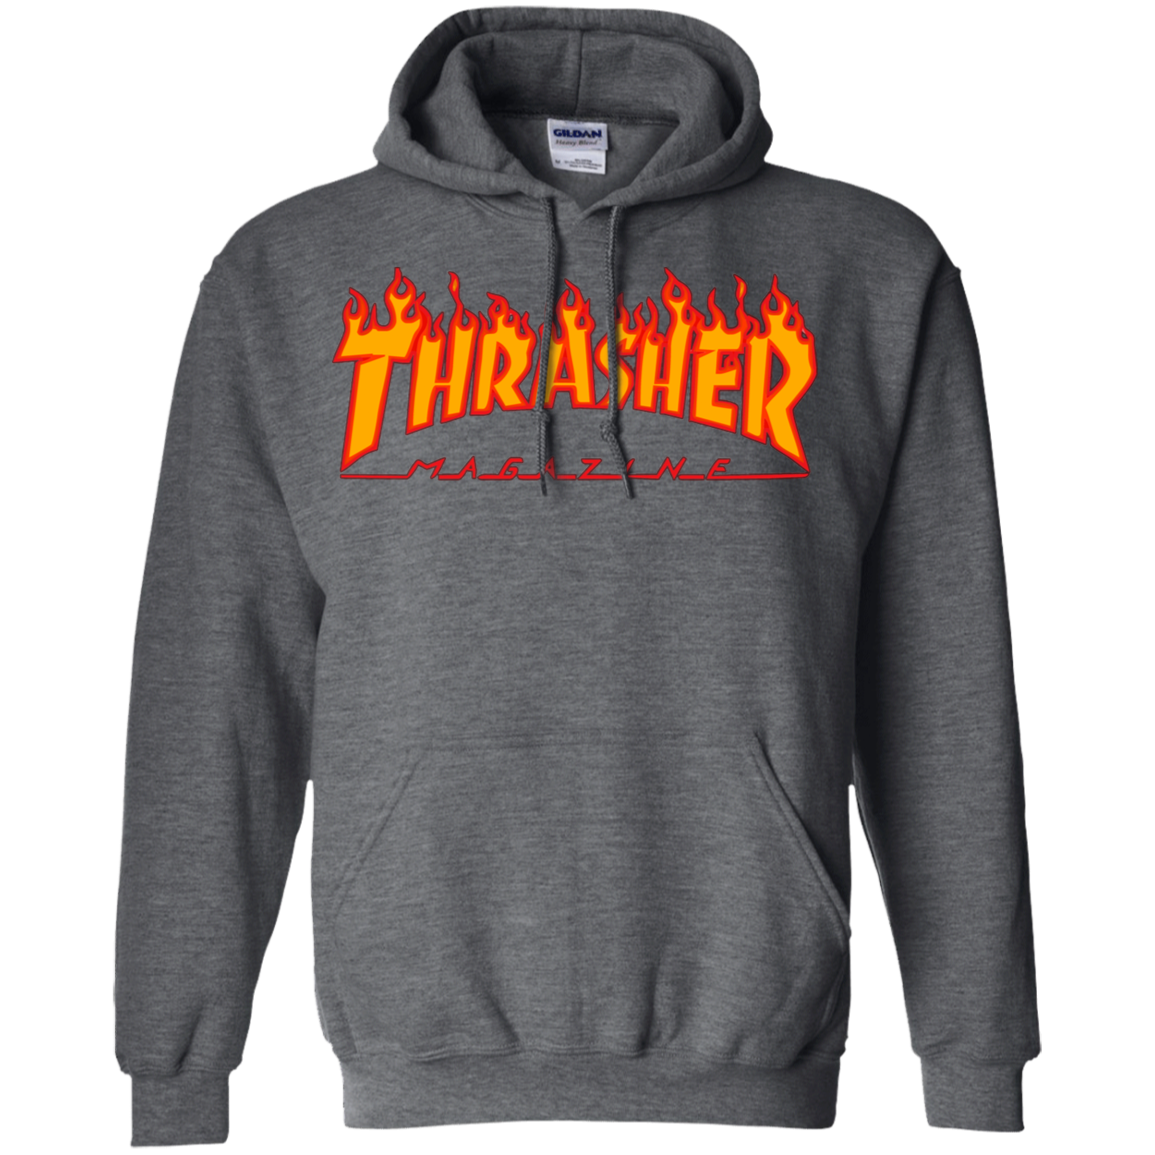 61a5401e91aa Thrasher Magazine Skateboarding Fire Design Pullover Hoodie - AGREEABLE